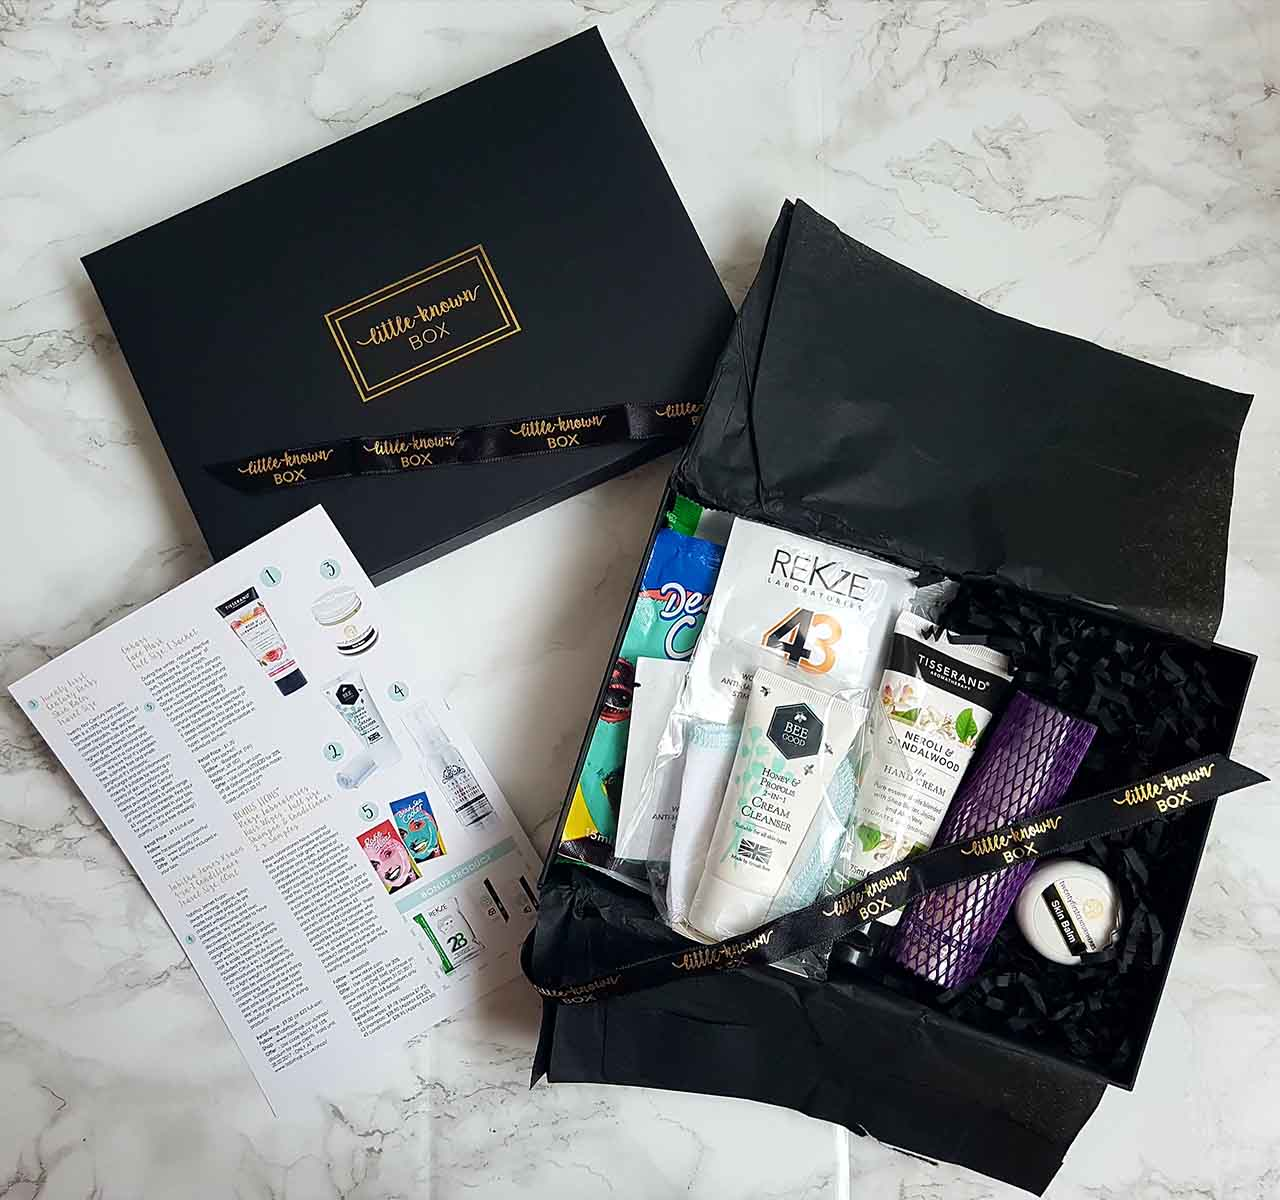 "Unboxing A Beauty Subscription Box: ""Little Known Box"": If you are a beauty enthusiast, you will know about the various beauty boxes you can subscribe to! Ever since I found out about beauty subscription boxes, I have tried to test as many as possible. Sadly, in the U.K. we don't have as many to choose from as in the U.S.A. but the U.K. list is growing! The Little Known Box is one of the newest beauty boxes to hit the market and this is the 2nd box I have tried from the company. The 1st box I tested was the Christmas limited edition box which was excellent."